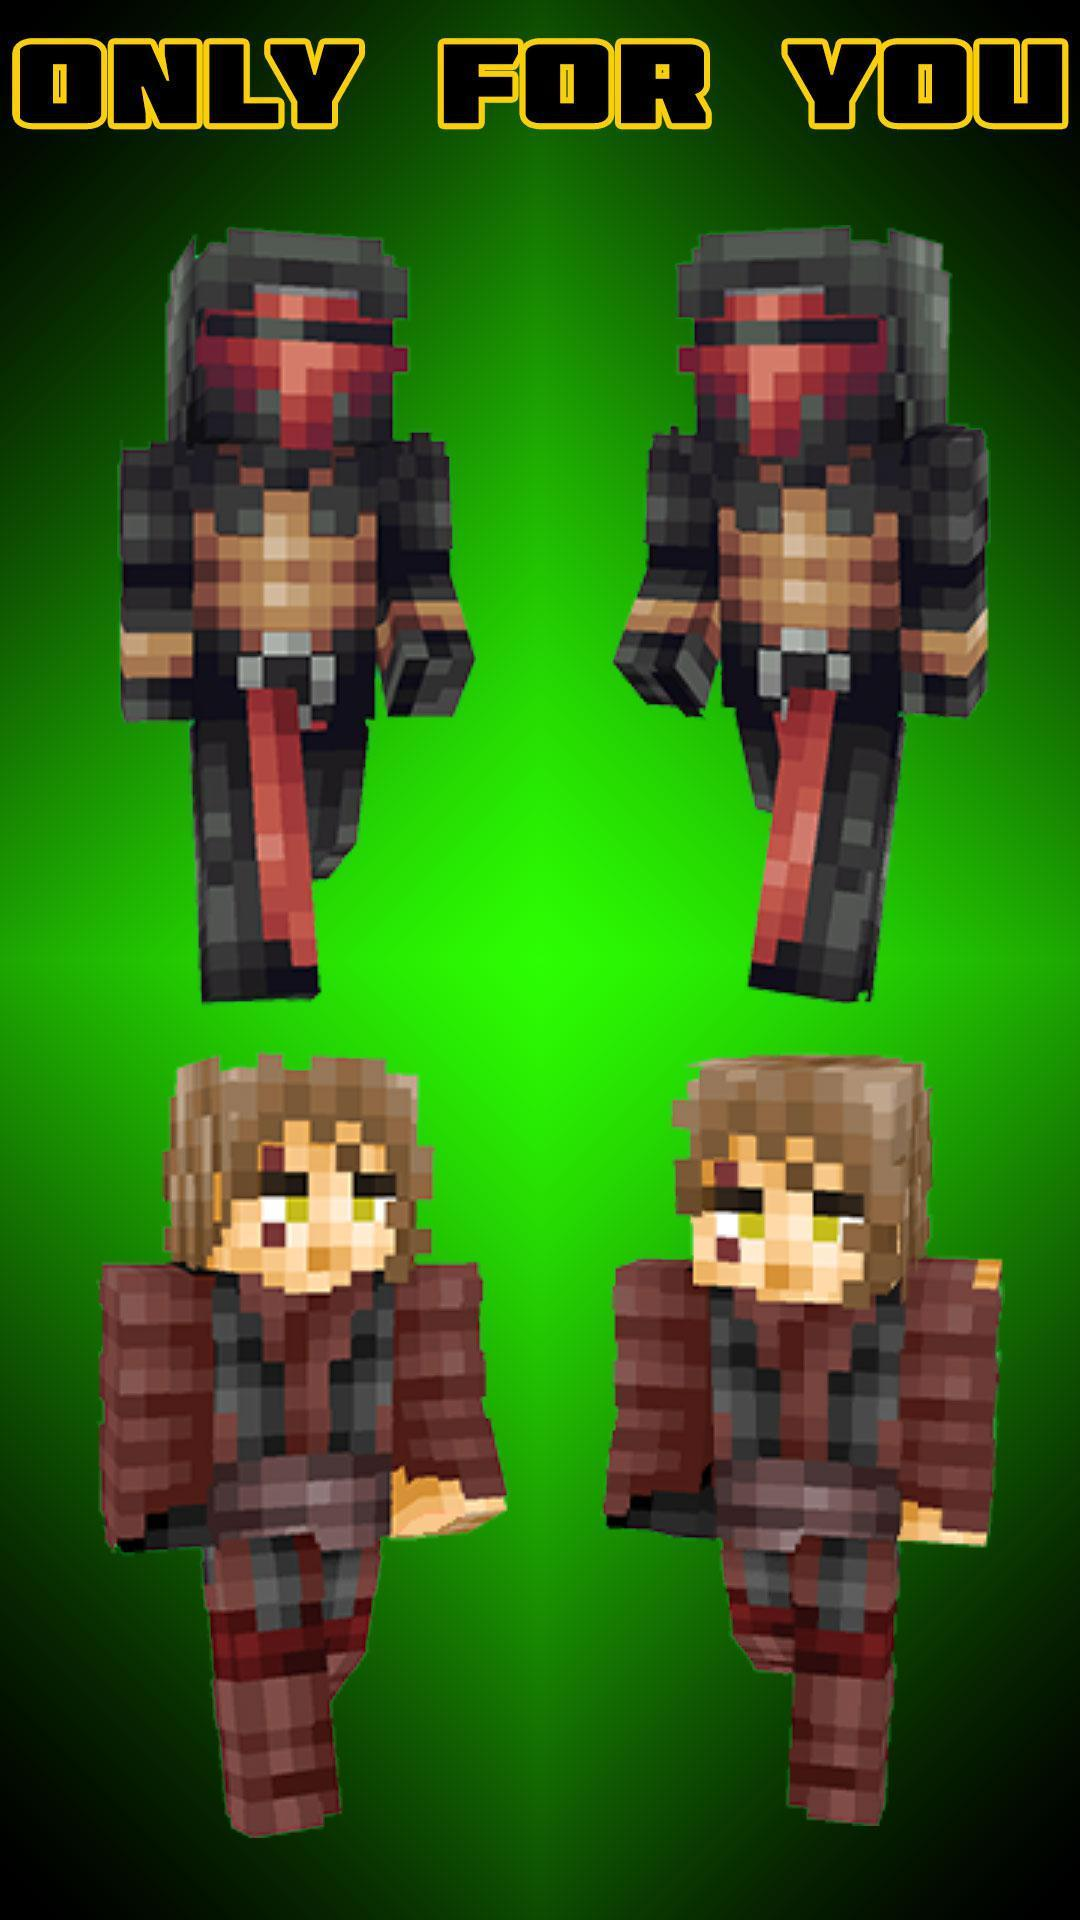 Skins for Minecraft - Skins from Star Wars for Android - APK Download